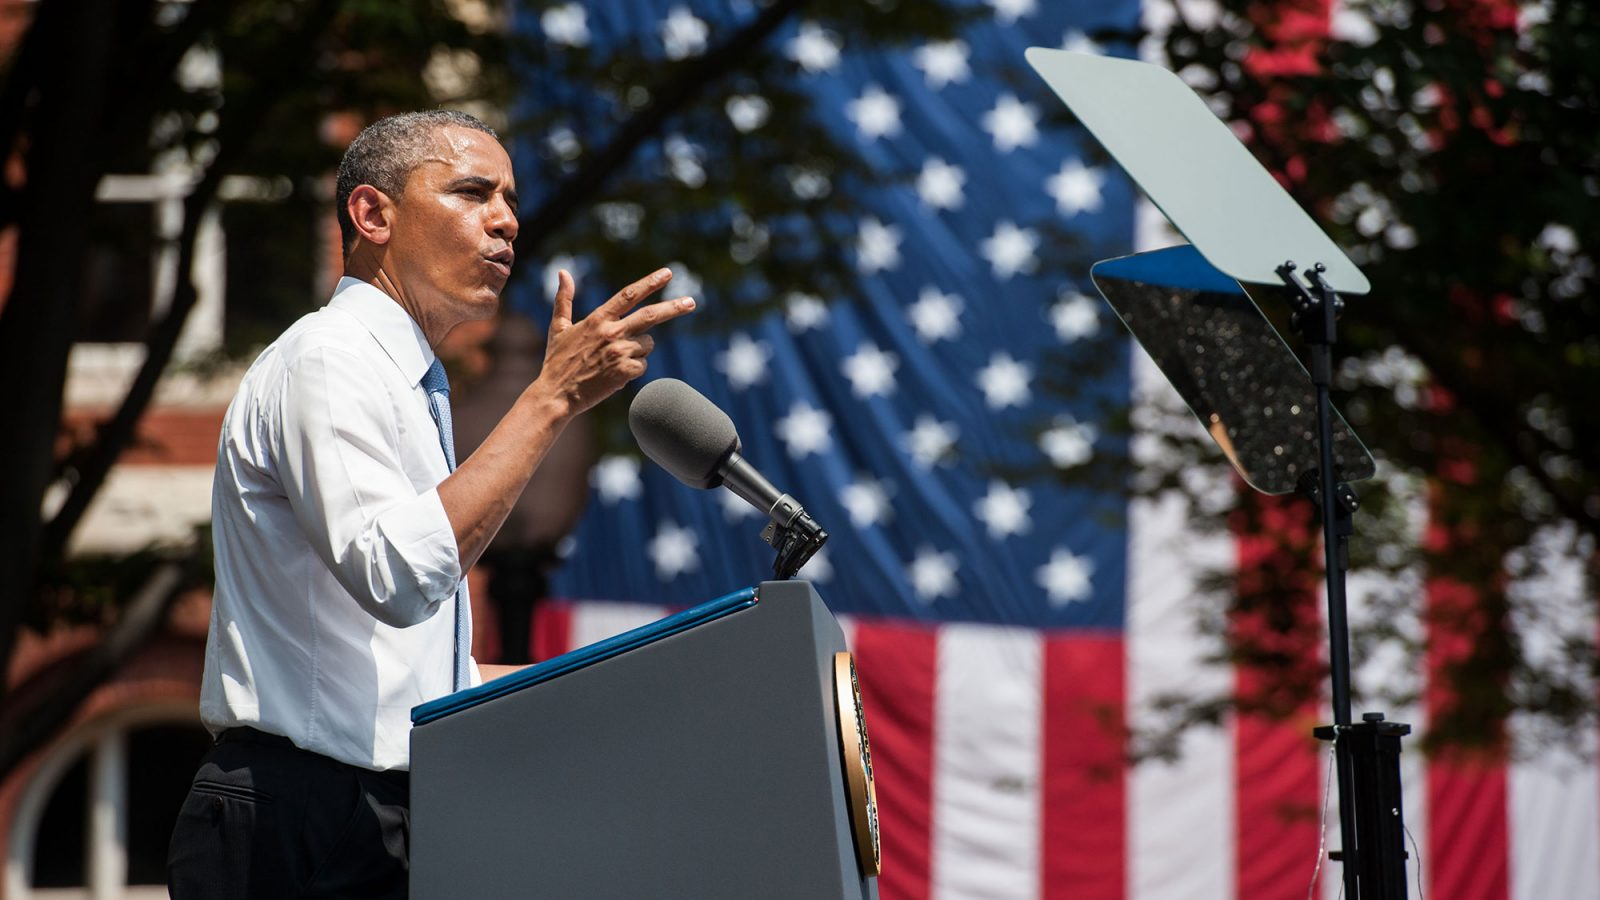 A side view of Barack Obama as he stands at a lectern delivering an address outside.